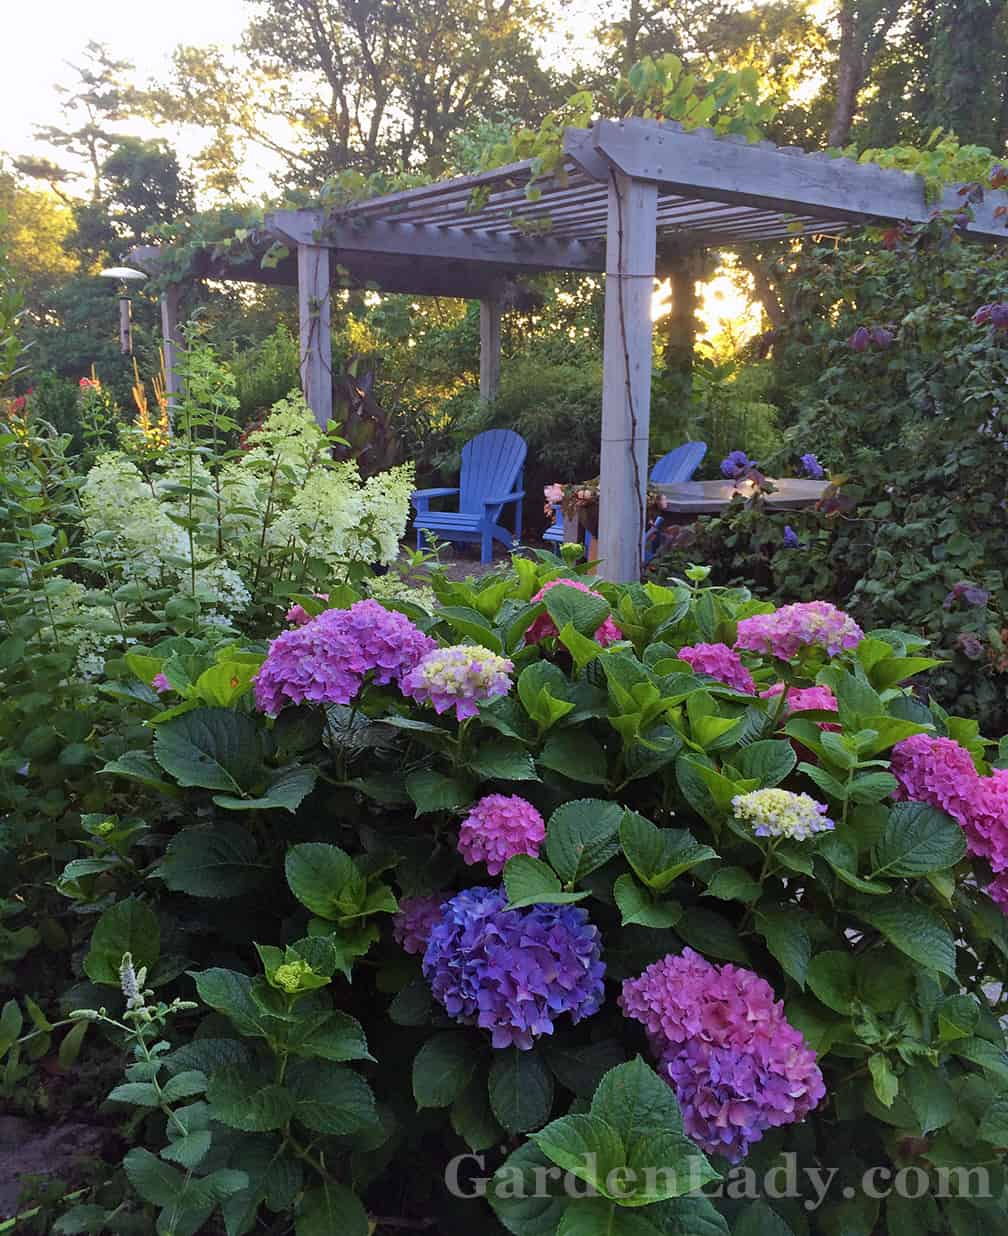 This is my side yard where the driveway ends. This pink/blue Hydrangea macrophylla (unknown variety - it was one of the 3 hydrangeas that came with our house) had a space next to it and I tucked the pot with Bobo in it there for most of the summer.